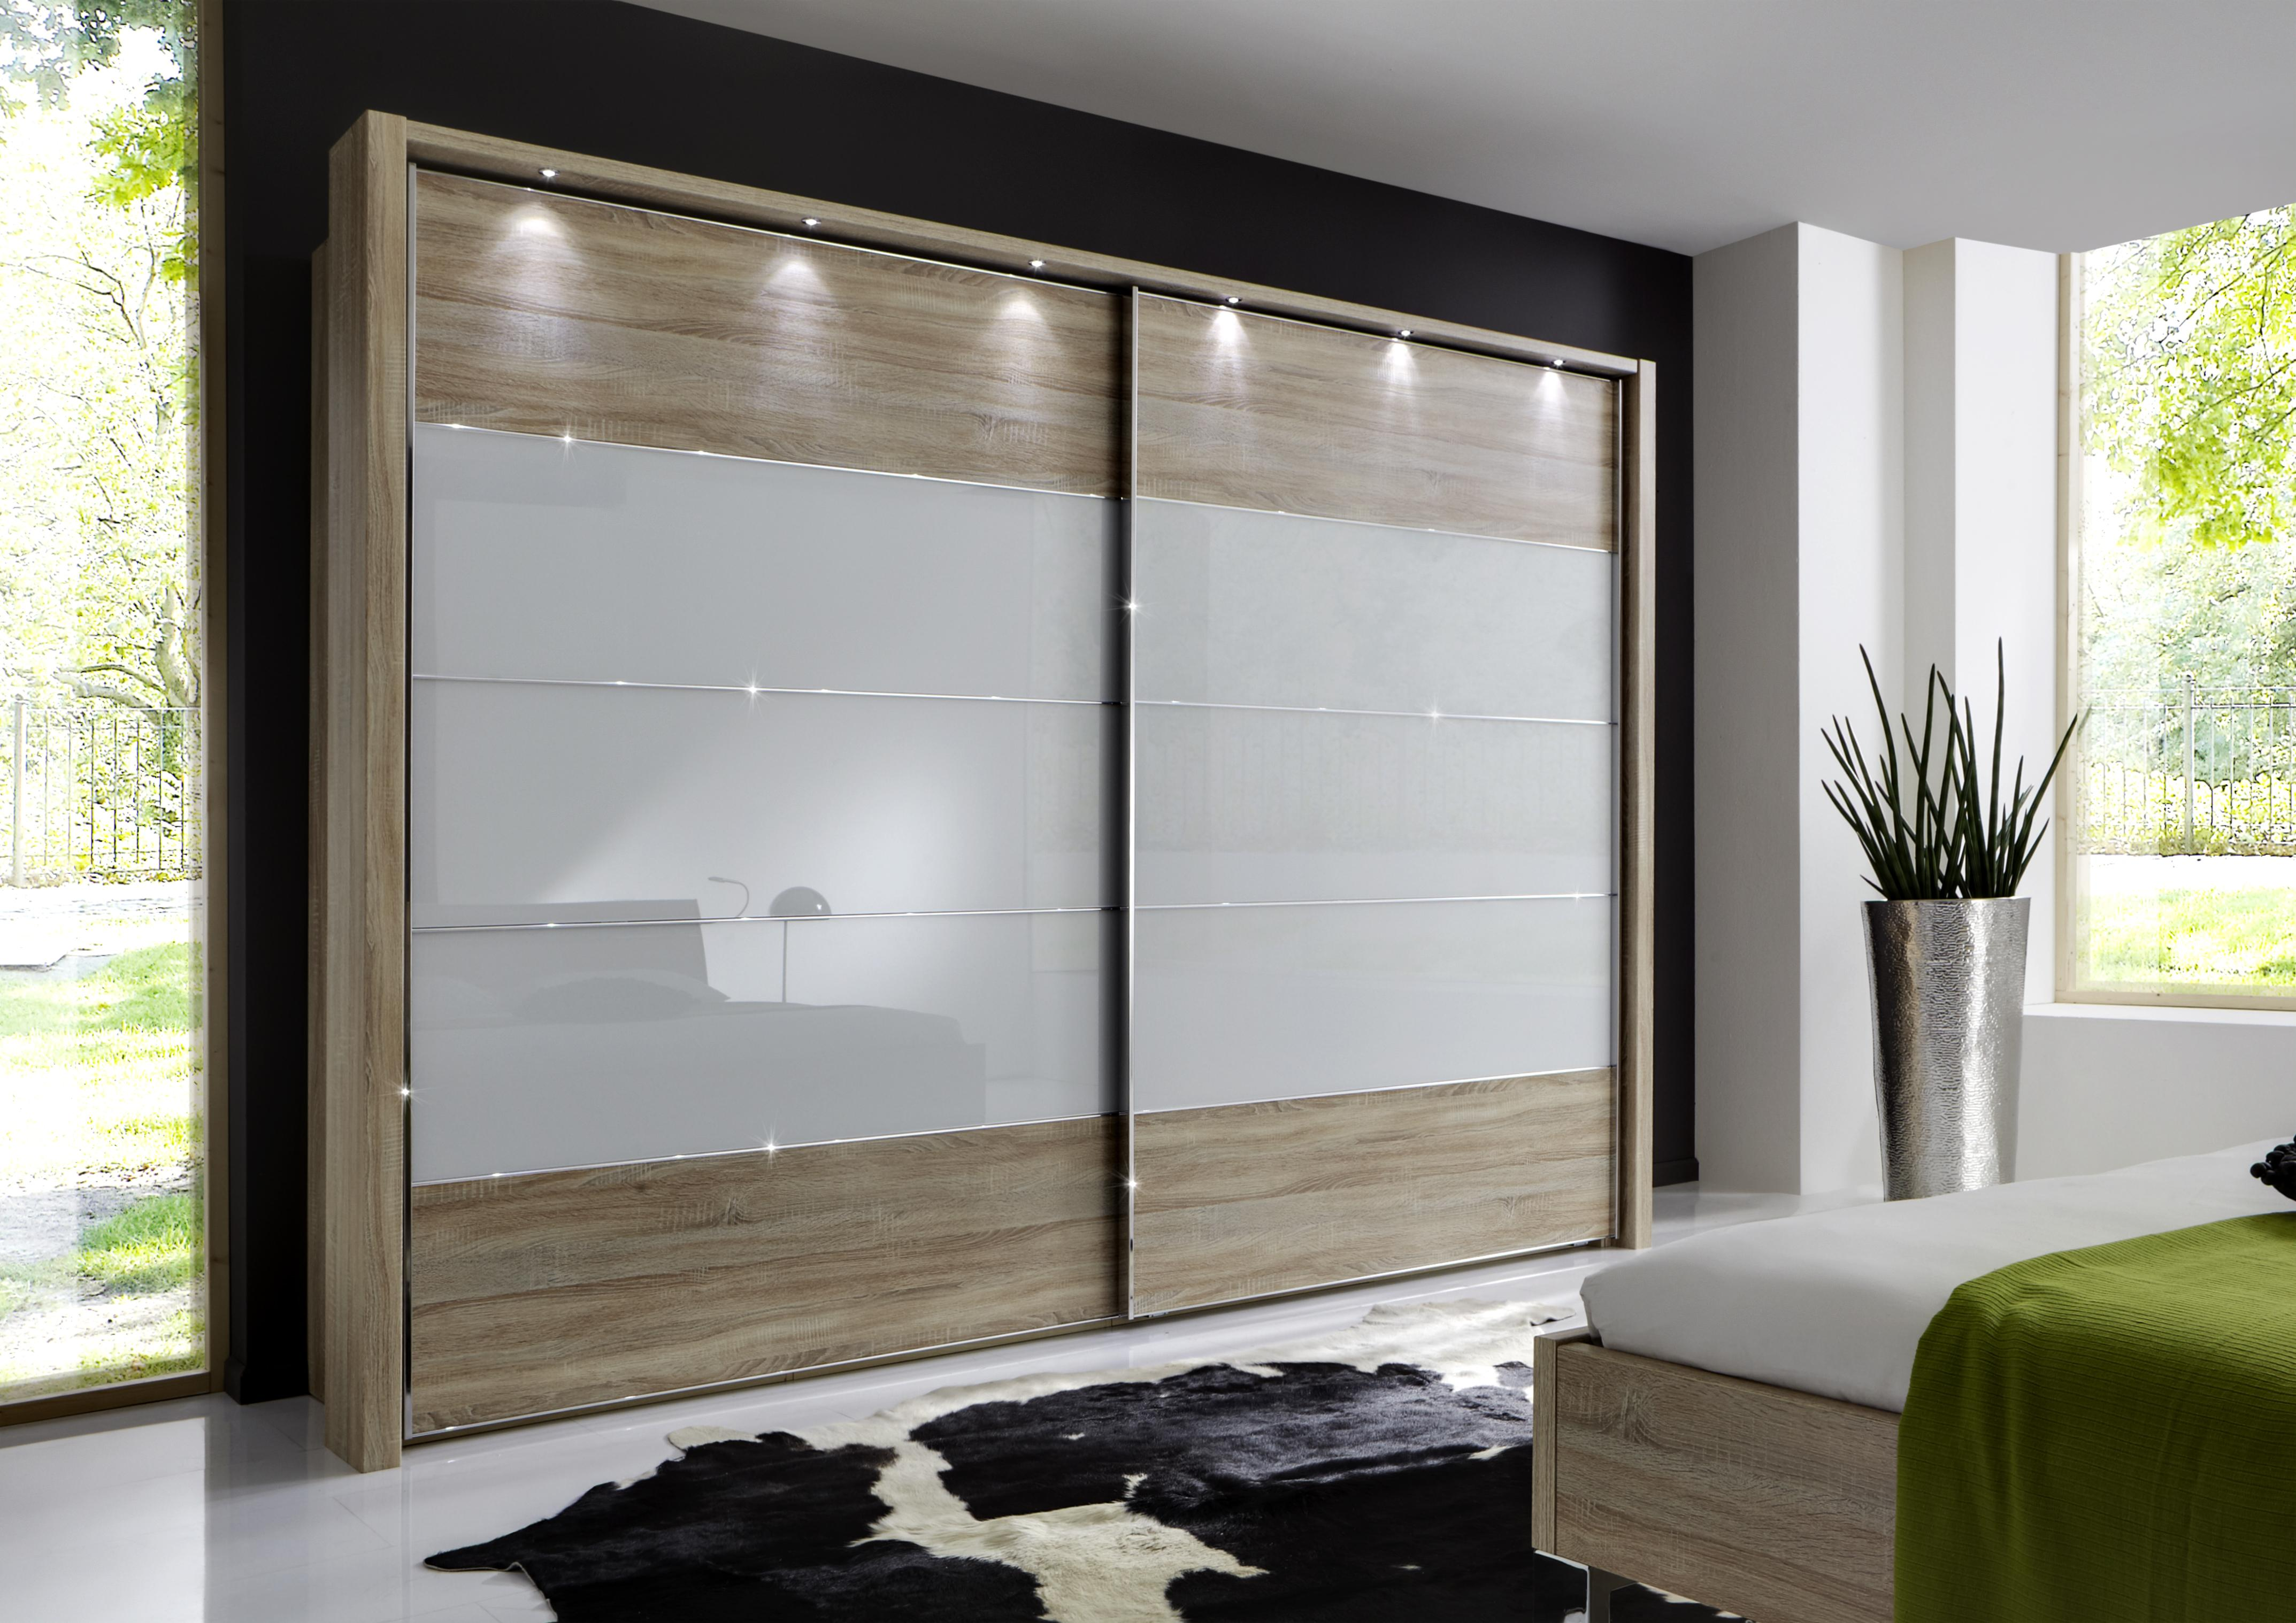 Wooden wardrobe with black and white colour scheme